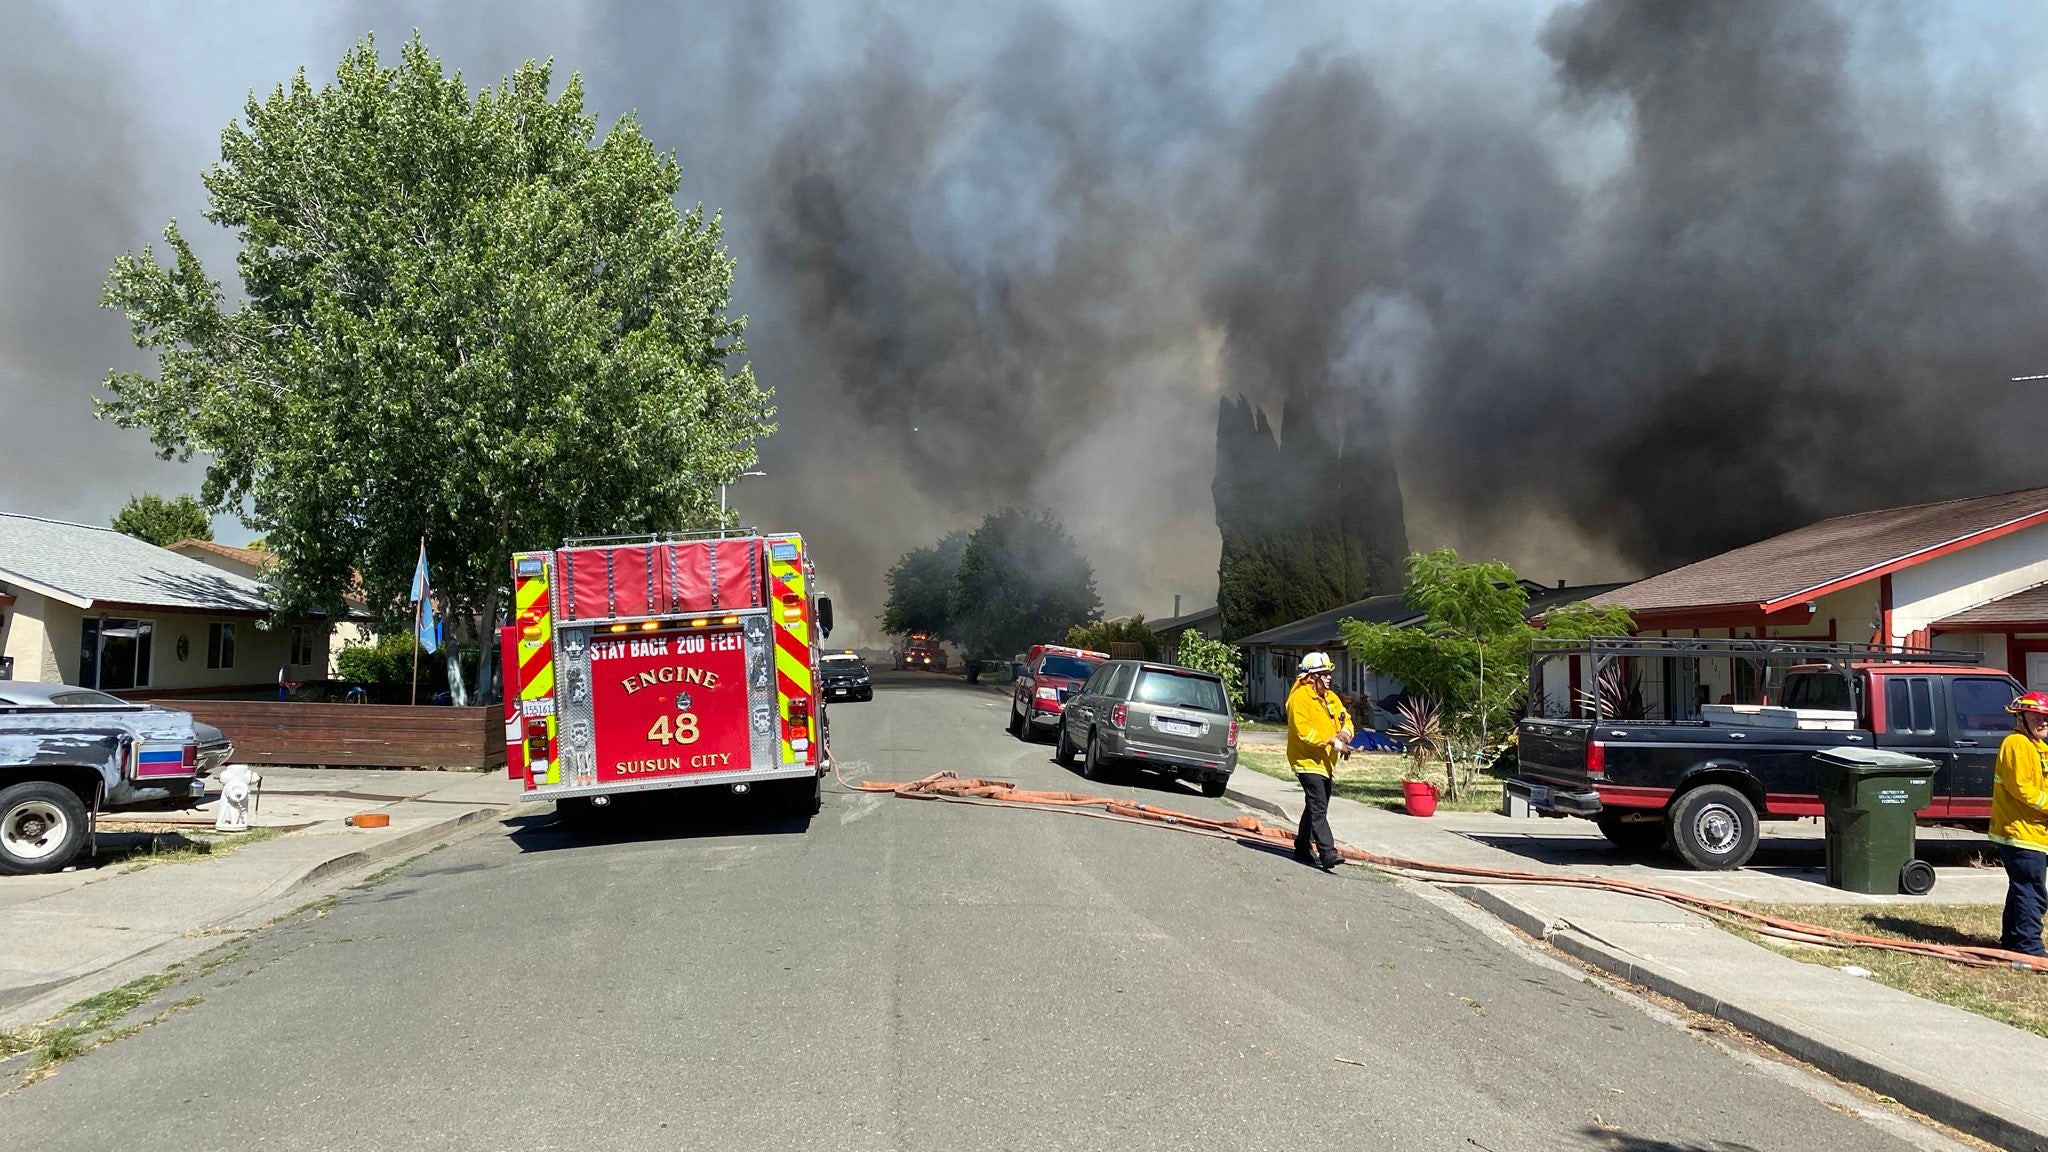 Wildfire Destroys Homes, Forces Evacuations in Suisun City, California